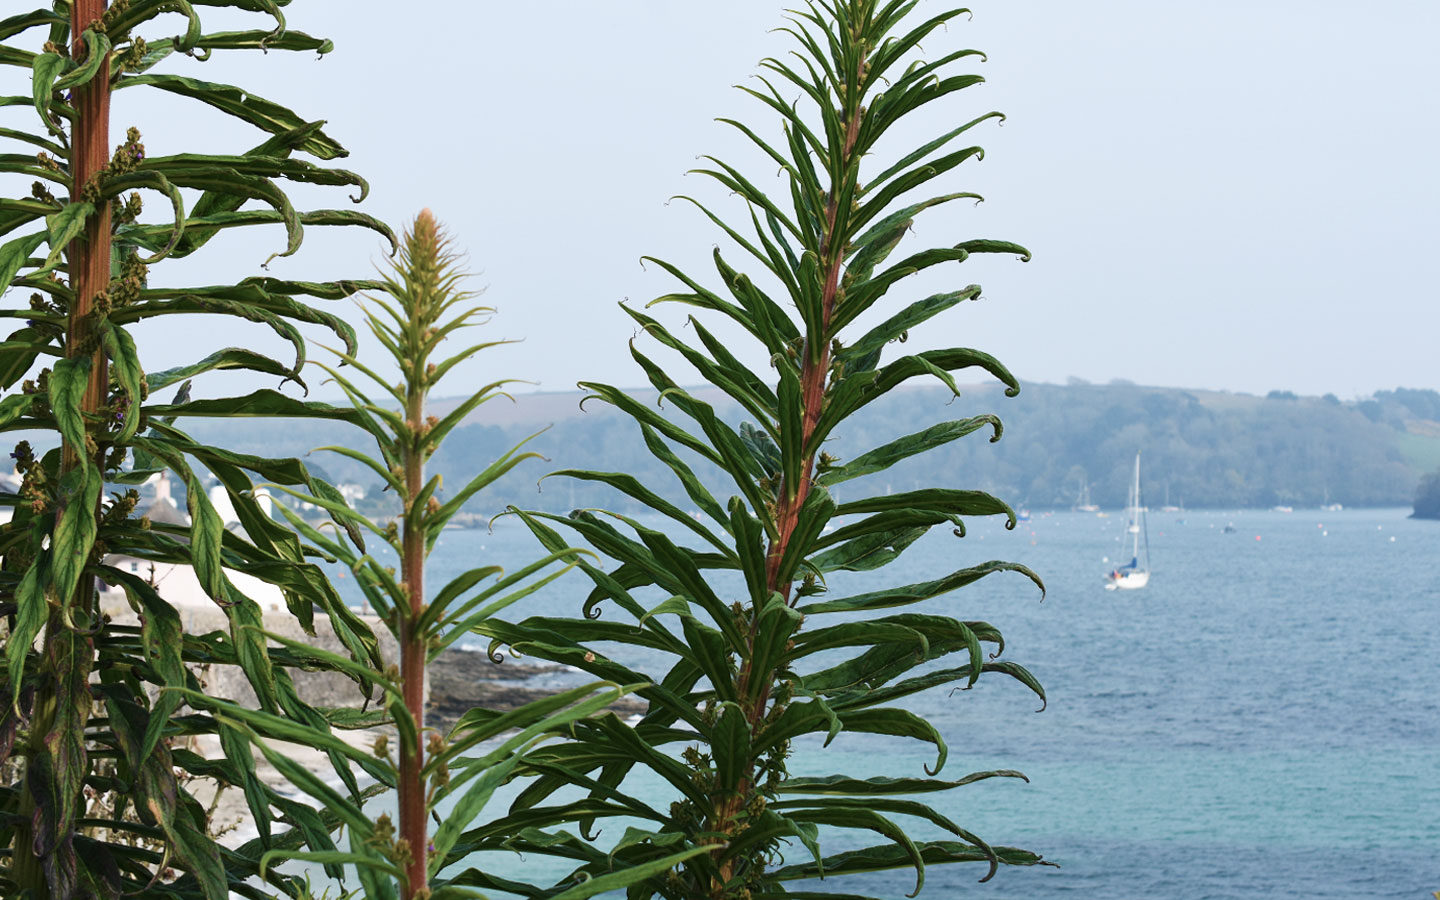 plants overlooking harbour at saint mawes in cornwall